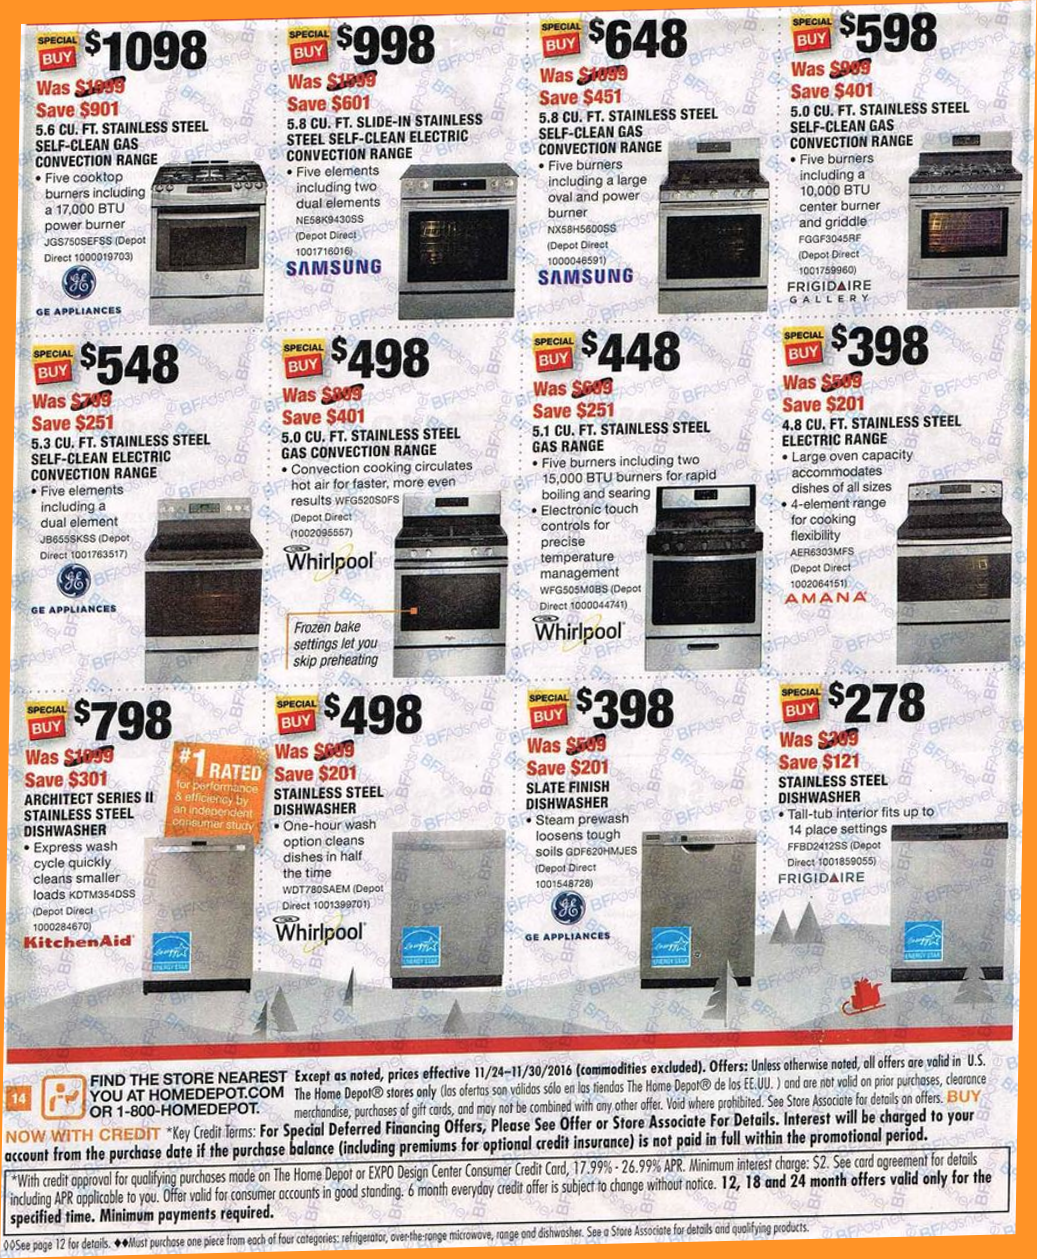 Home Depot S Black Friday 2016 Sale Ad Scan Deals Page 5